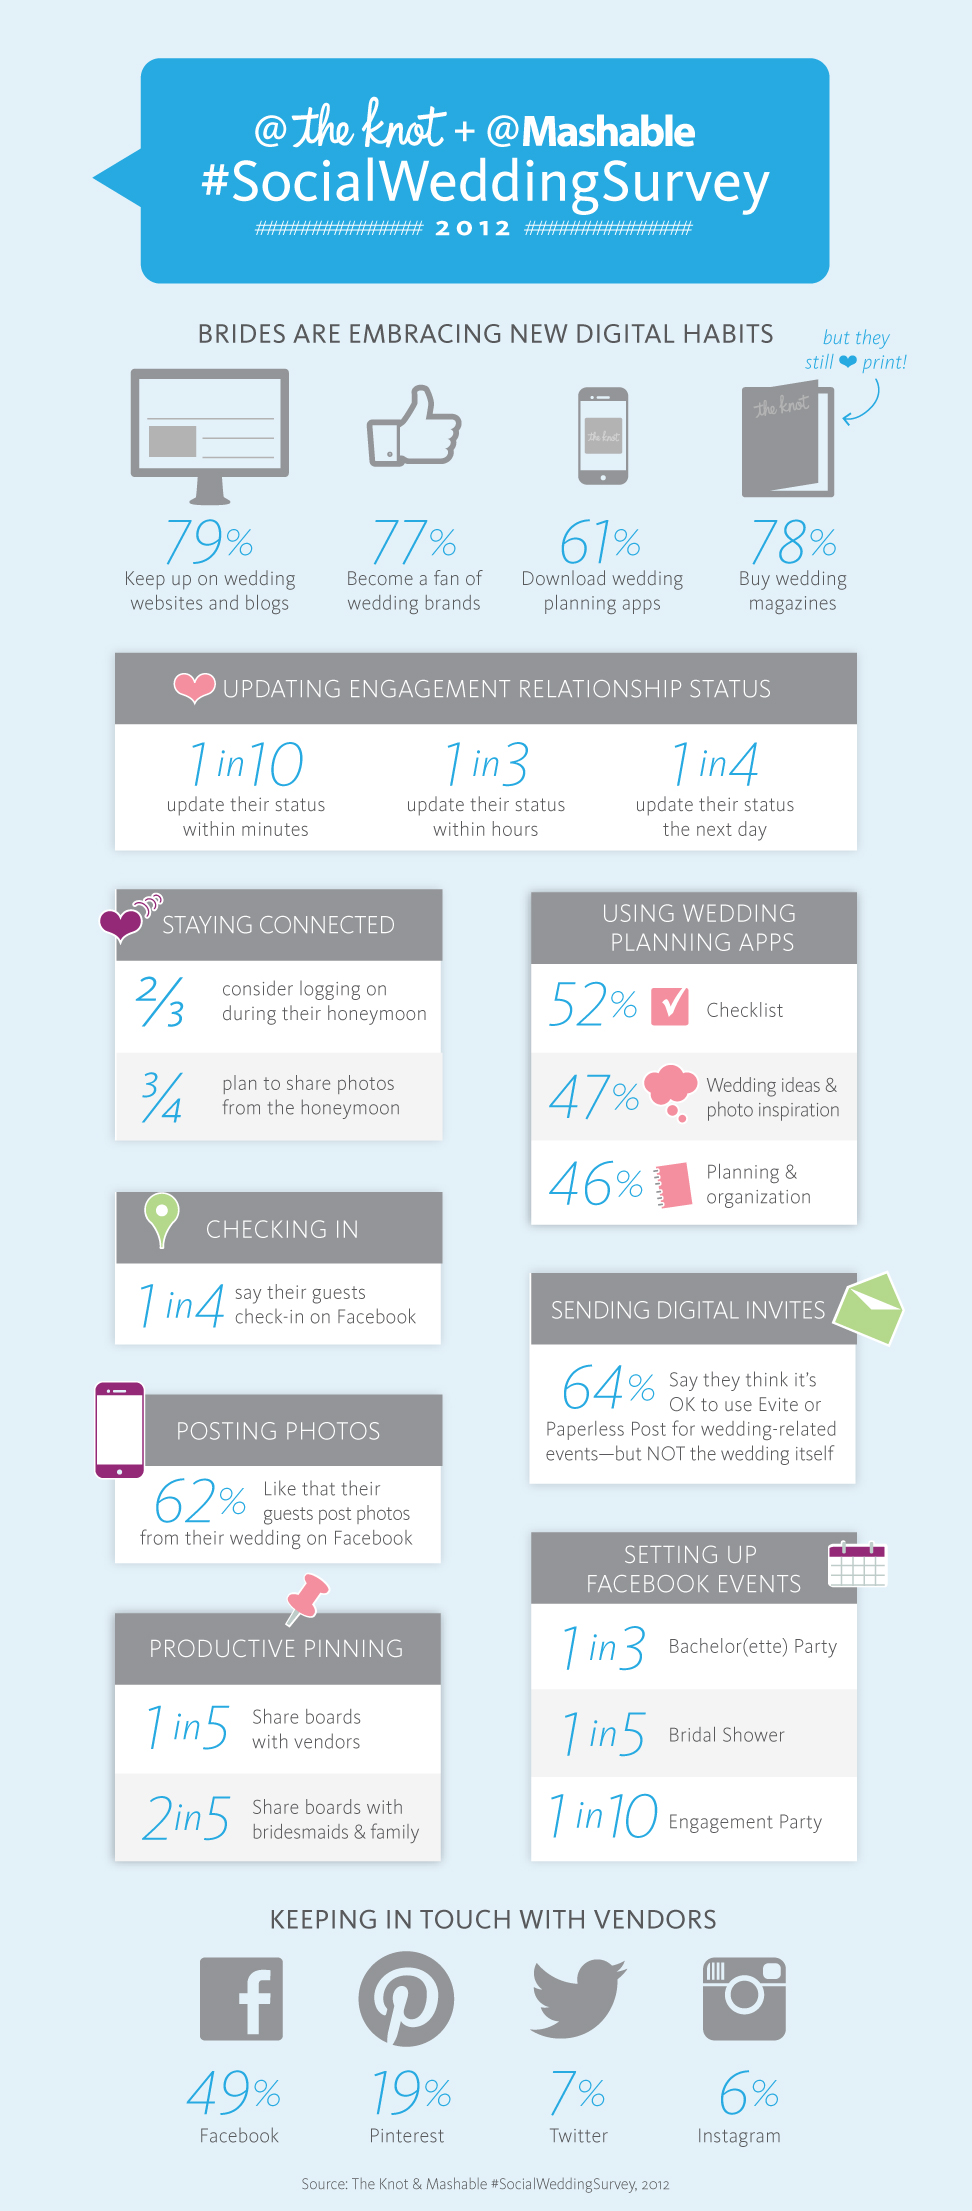 2012-11-30-TheKnot.comMashable.comSocialWeddingSurveyInfographic.jpg